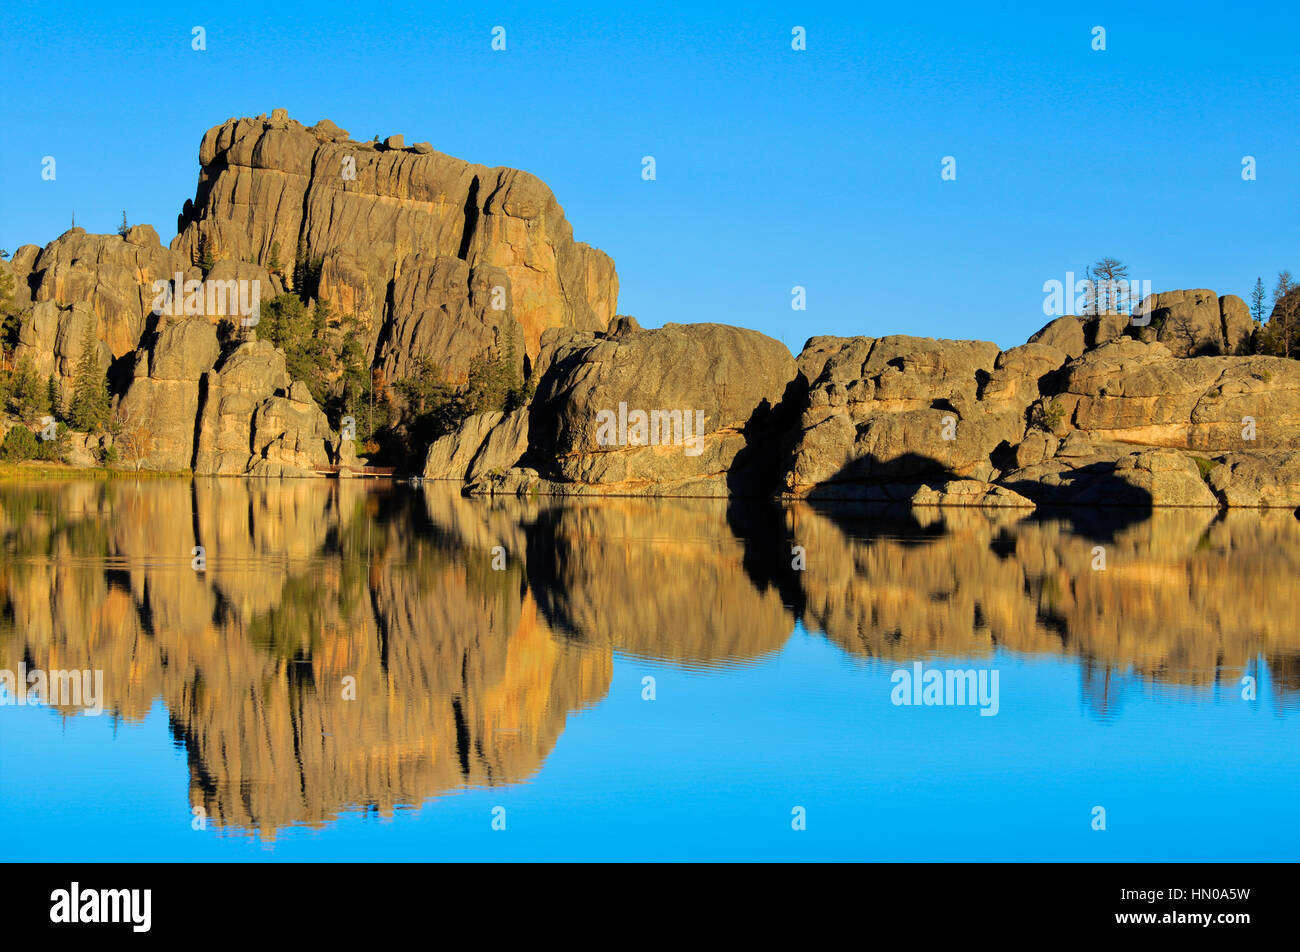 Sylvan Lake, Custer State Park, Black Hills, South Dakota, USA, - Stock Image